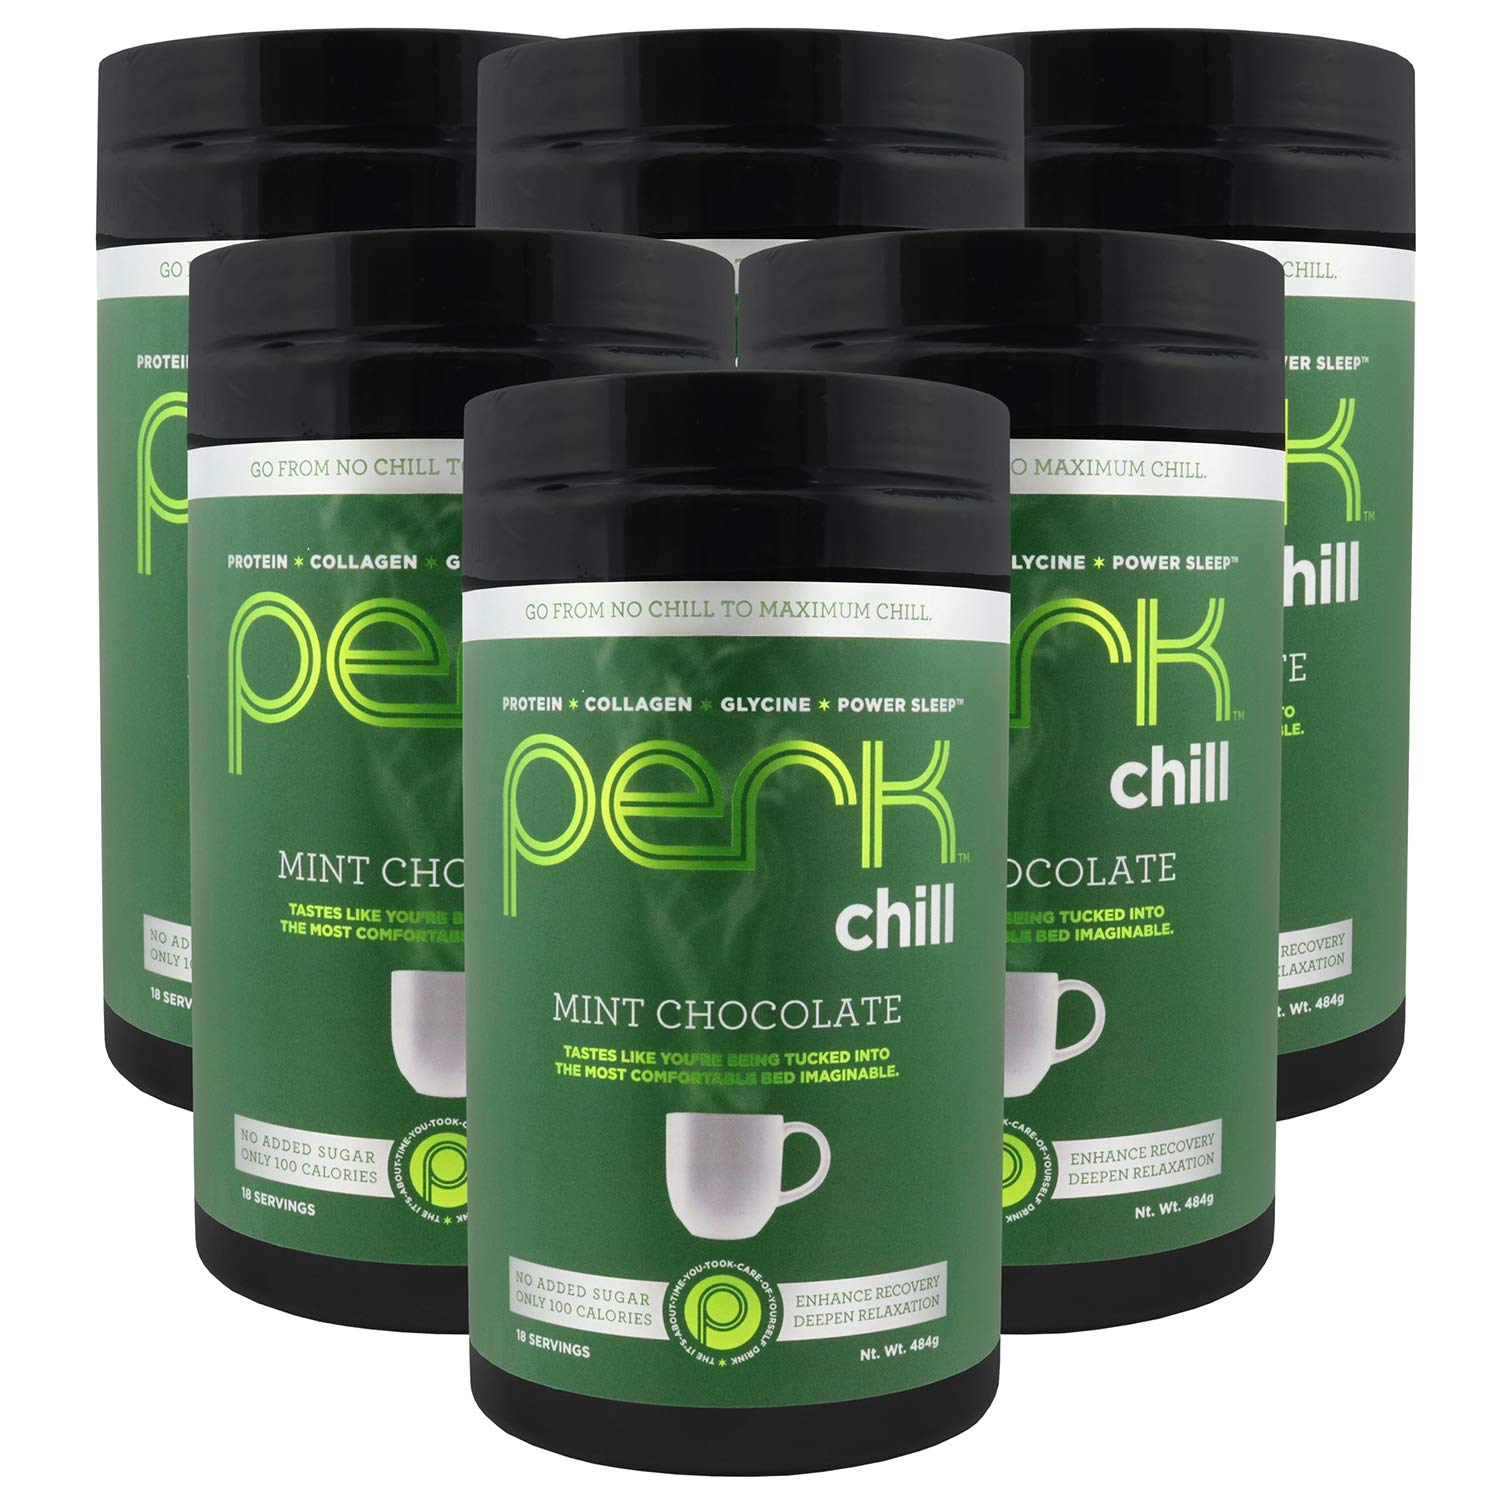 """Perk Chill – Mint Chocolate Flavored Beverage Mix with Zero added Sugar – Packed with Protein, Collagen, L-Glycine, and Power Sleep. You Can """"Chill"""" Out and Relax with This Delicious Hot Drink. 6 Pack"""